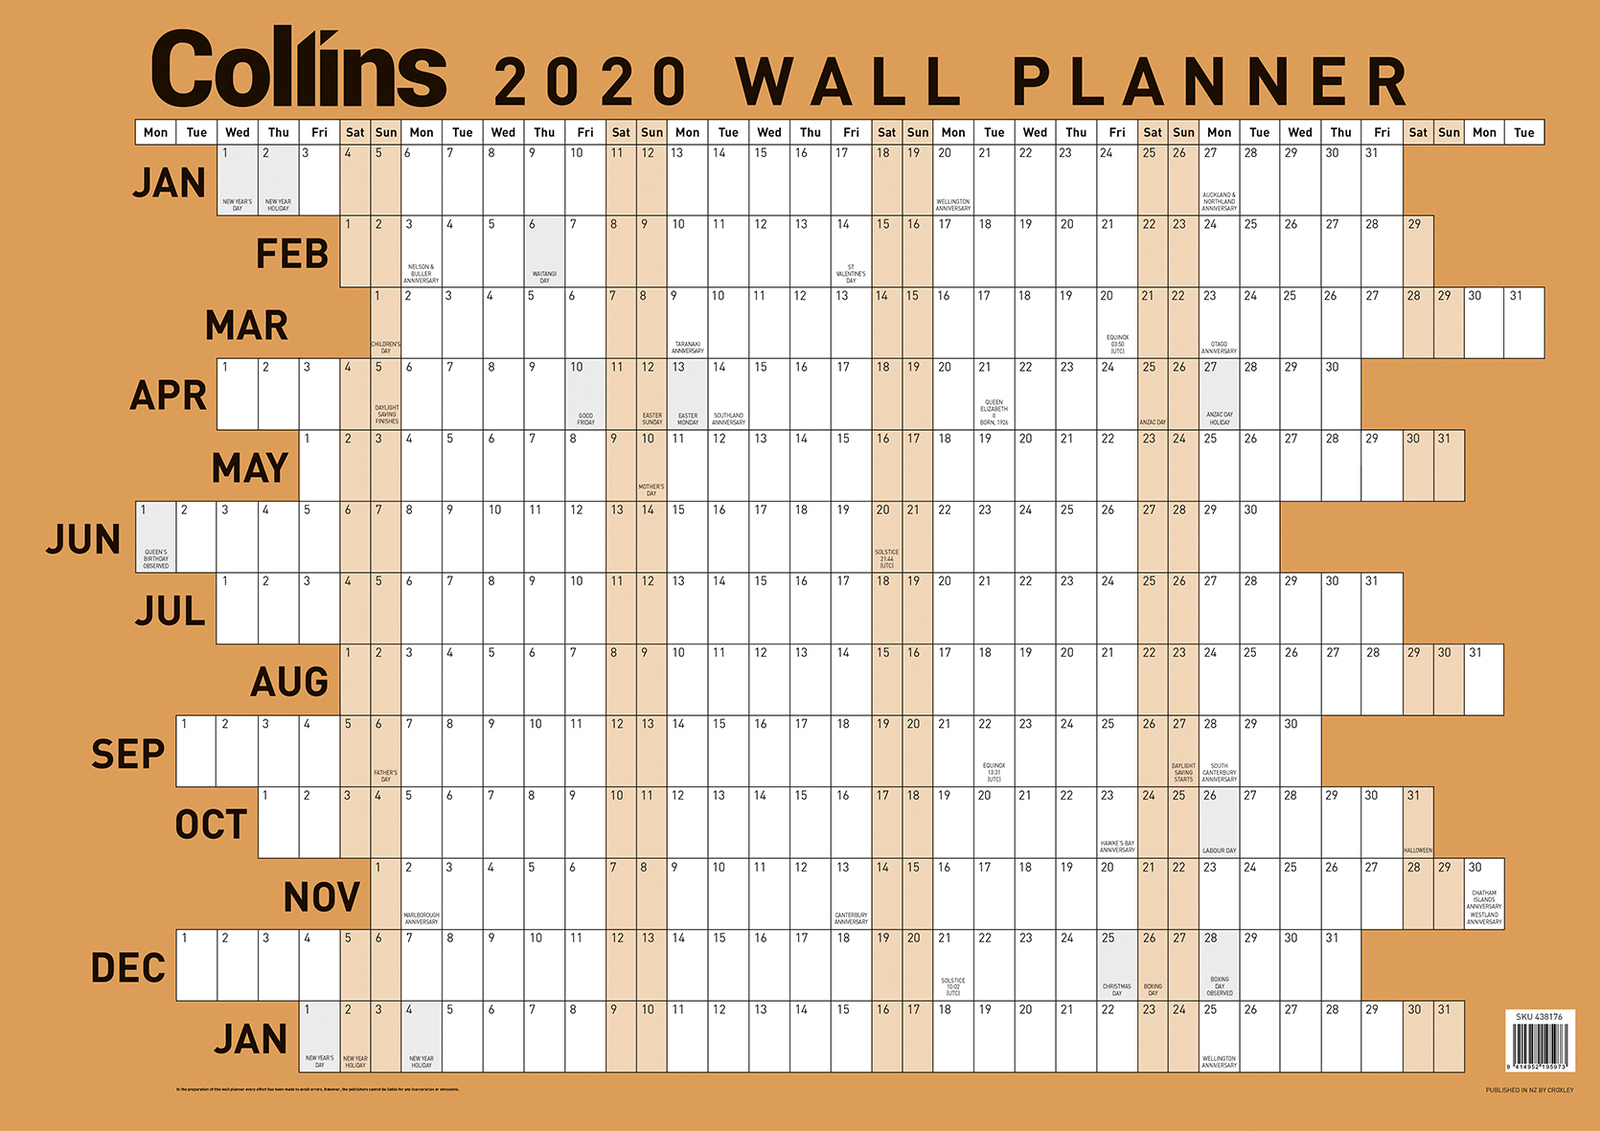 Collins: 2020 Large Wall Planner image